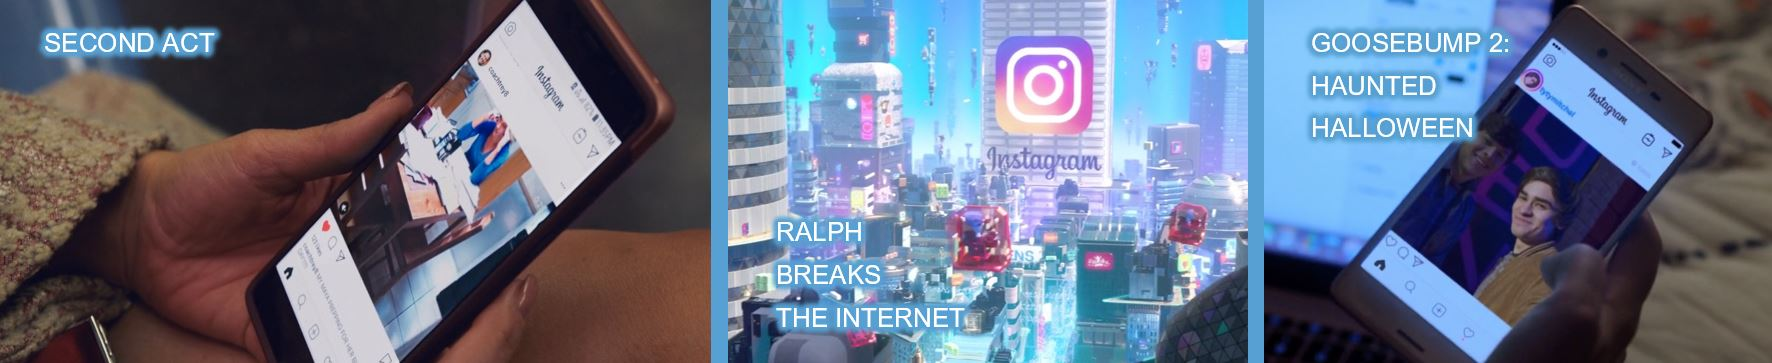 instagram product placement in 201 movies brand mentions dialogue concave brand tracking second act ralph breaks the internet goosebumps 2 haunted halloween